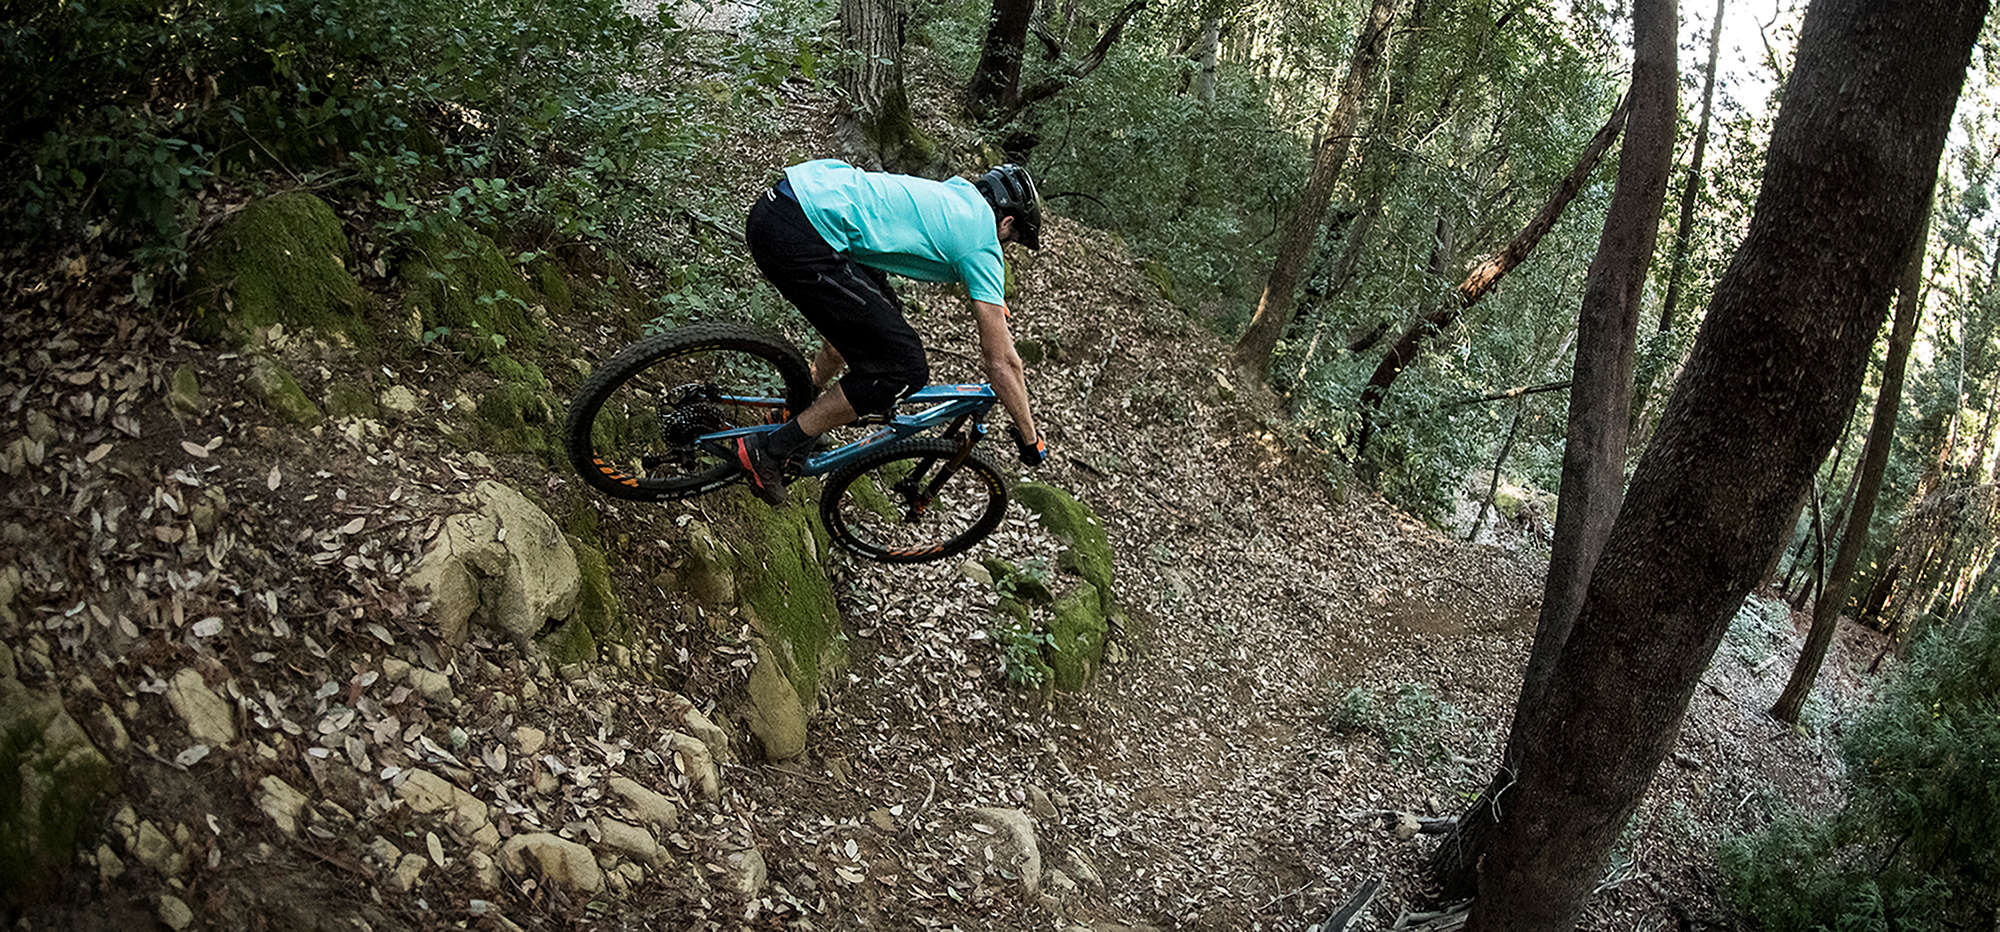 Man riding full suspension mountain bike over a difficult section of trail.